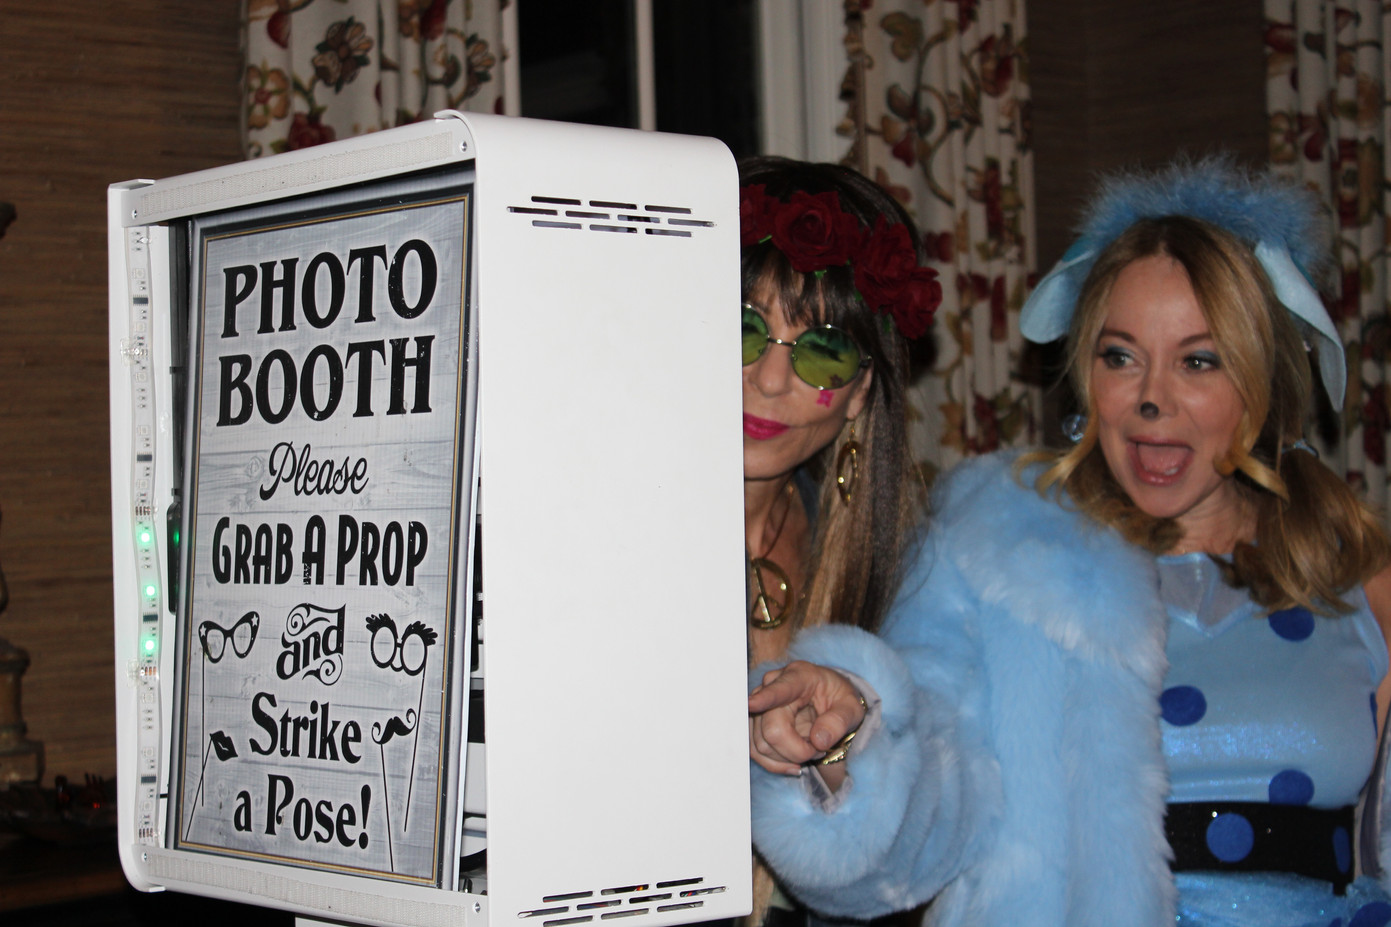 Halloween-Themed-Party-Photo-Booth.JPG